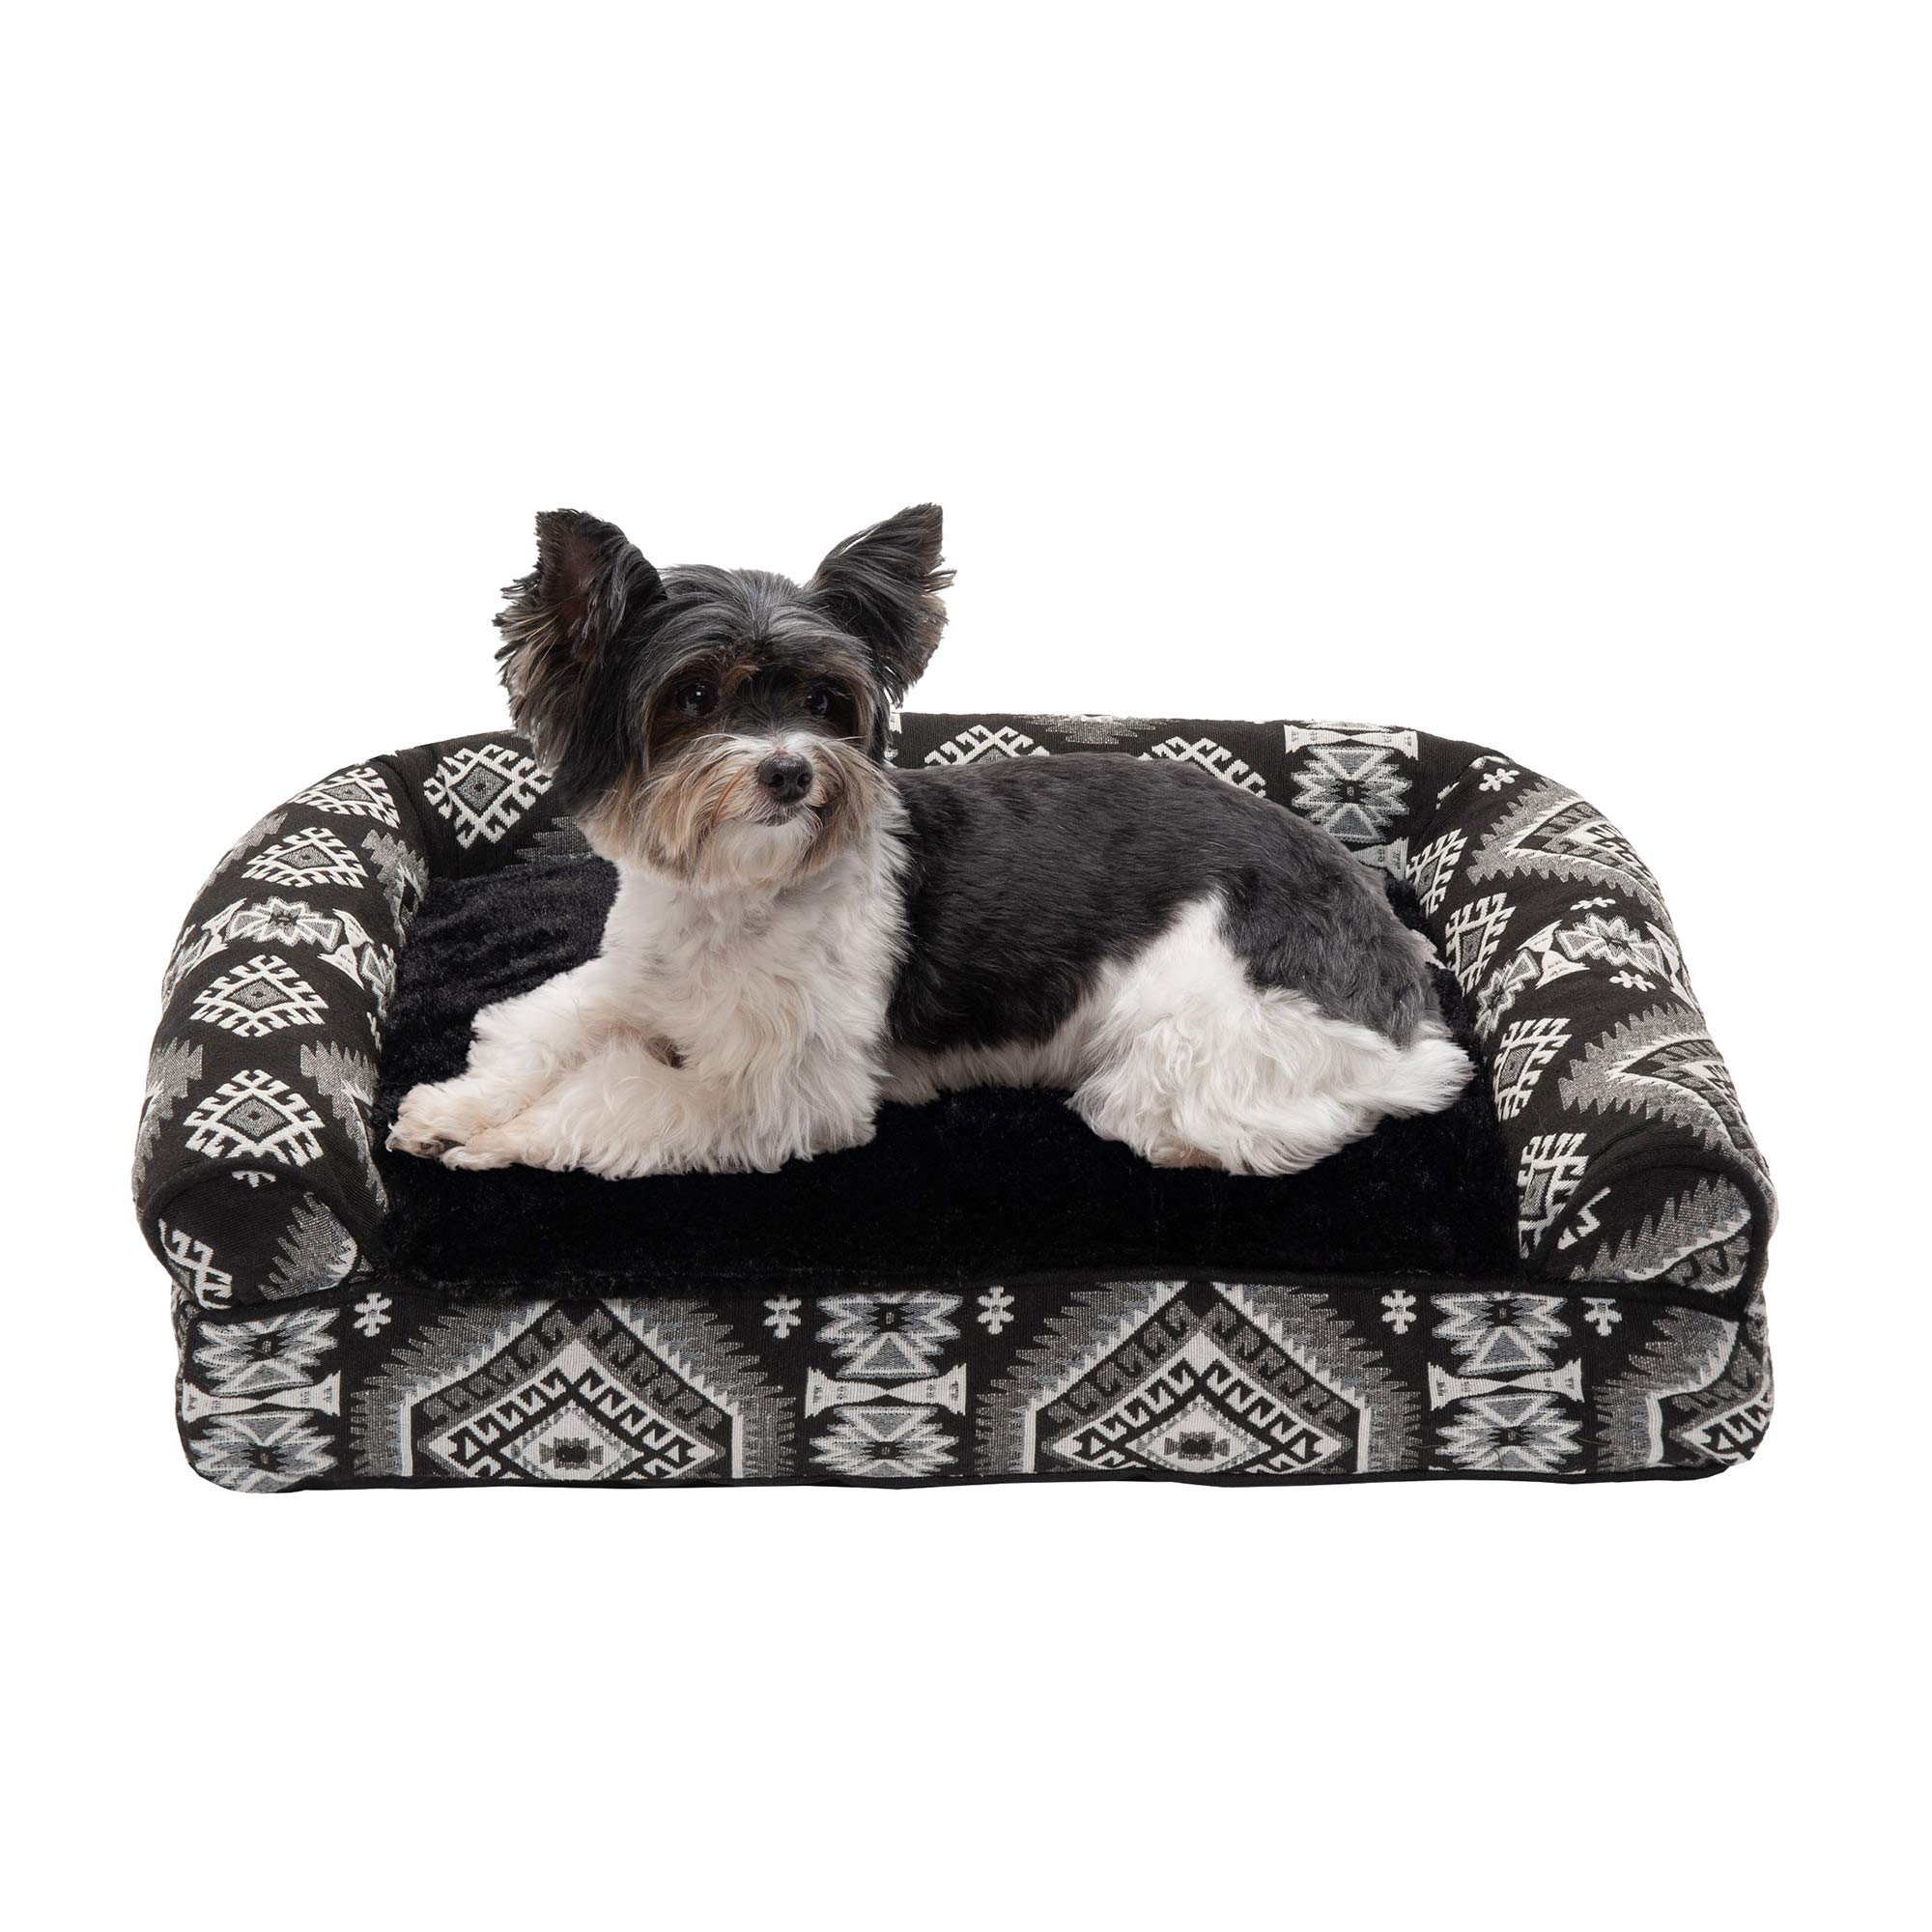 Furhaven Pet Dog Bed | Pillow Cushion Traditional Sofa & Deluxe Therapeutic Rectangular Foam Mattress Pet Bed w/ Removable Cover for Dogs & Cats - Available in Multiple Colors & Styles